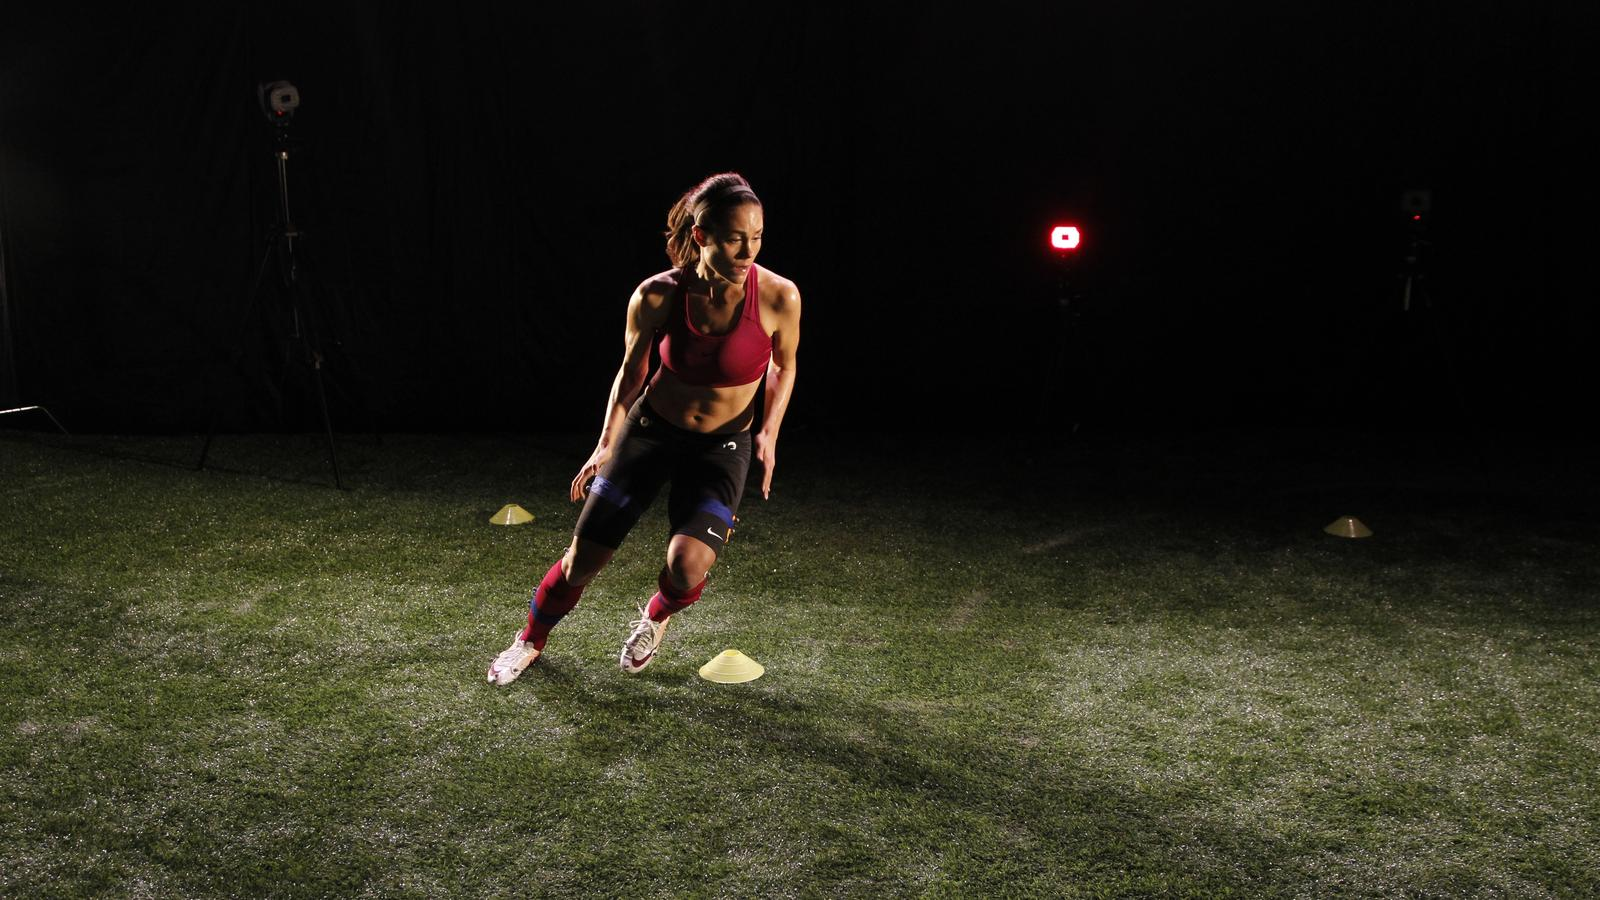 nsrl-motion-capture-soccer-cutting